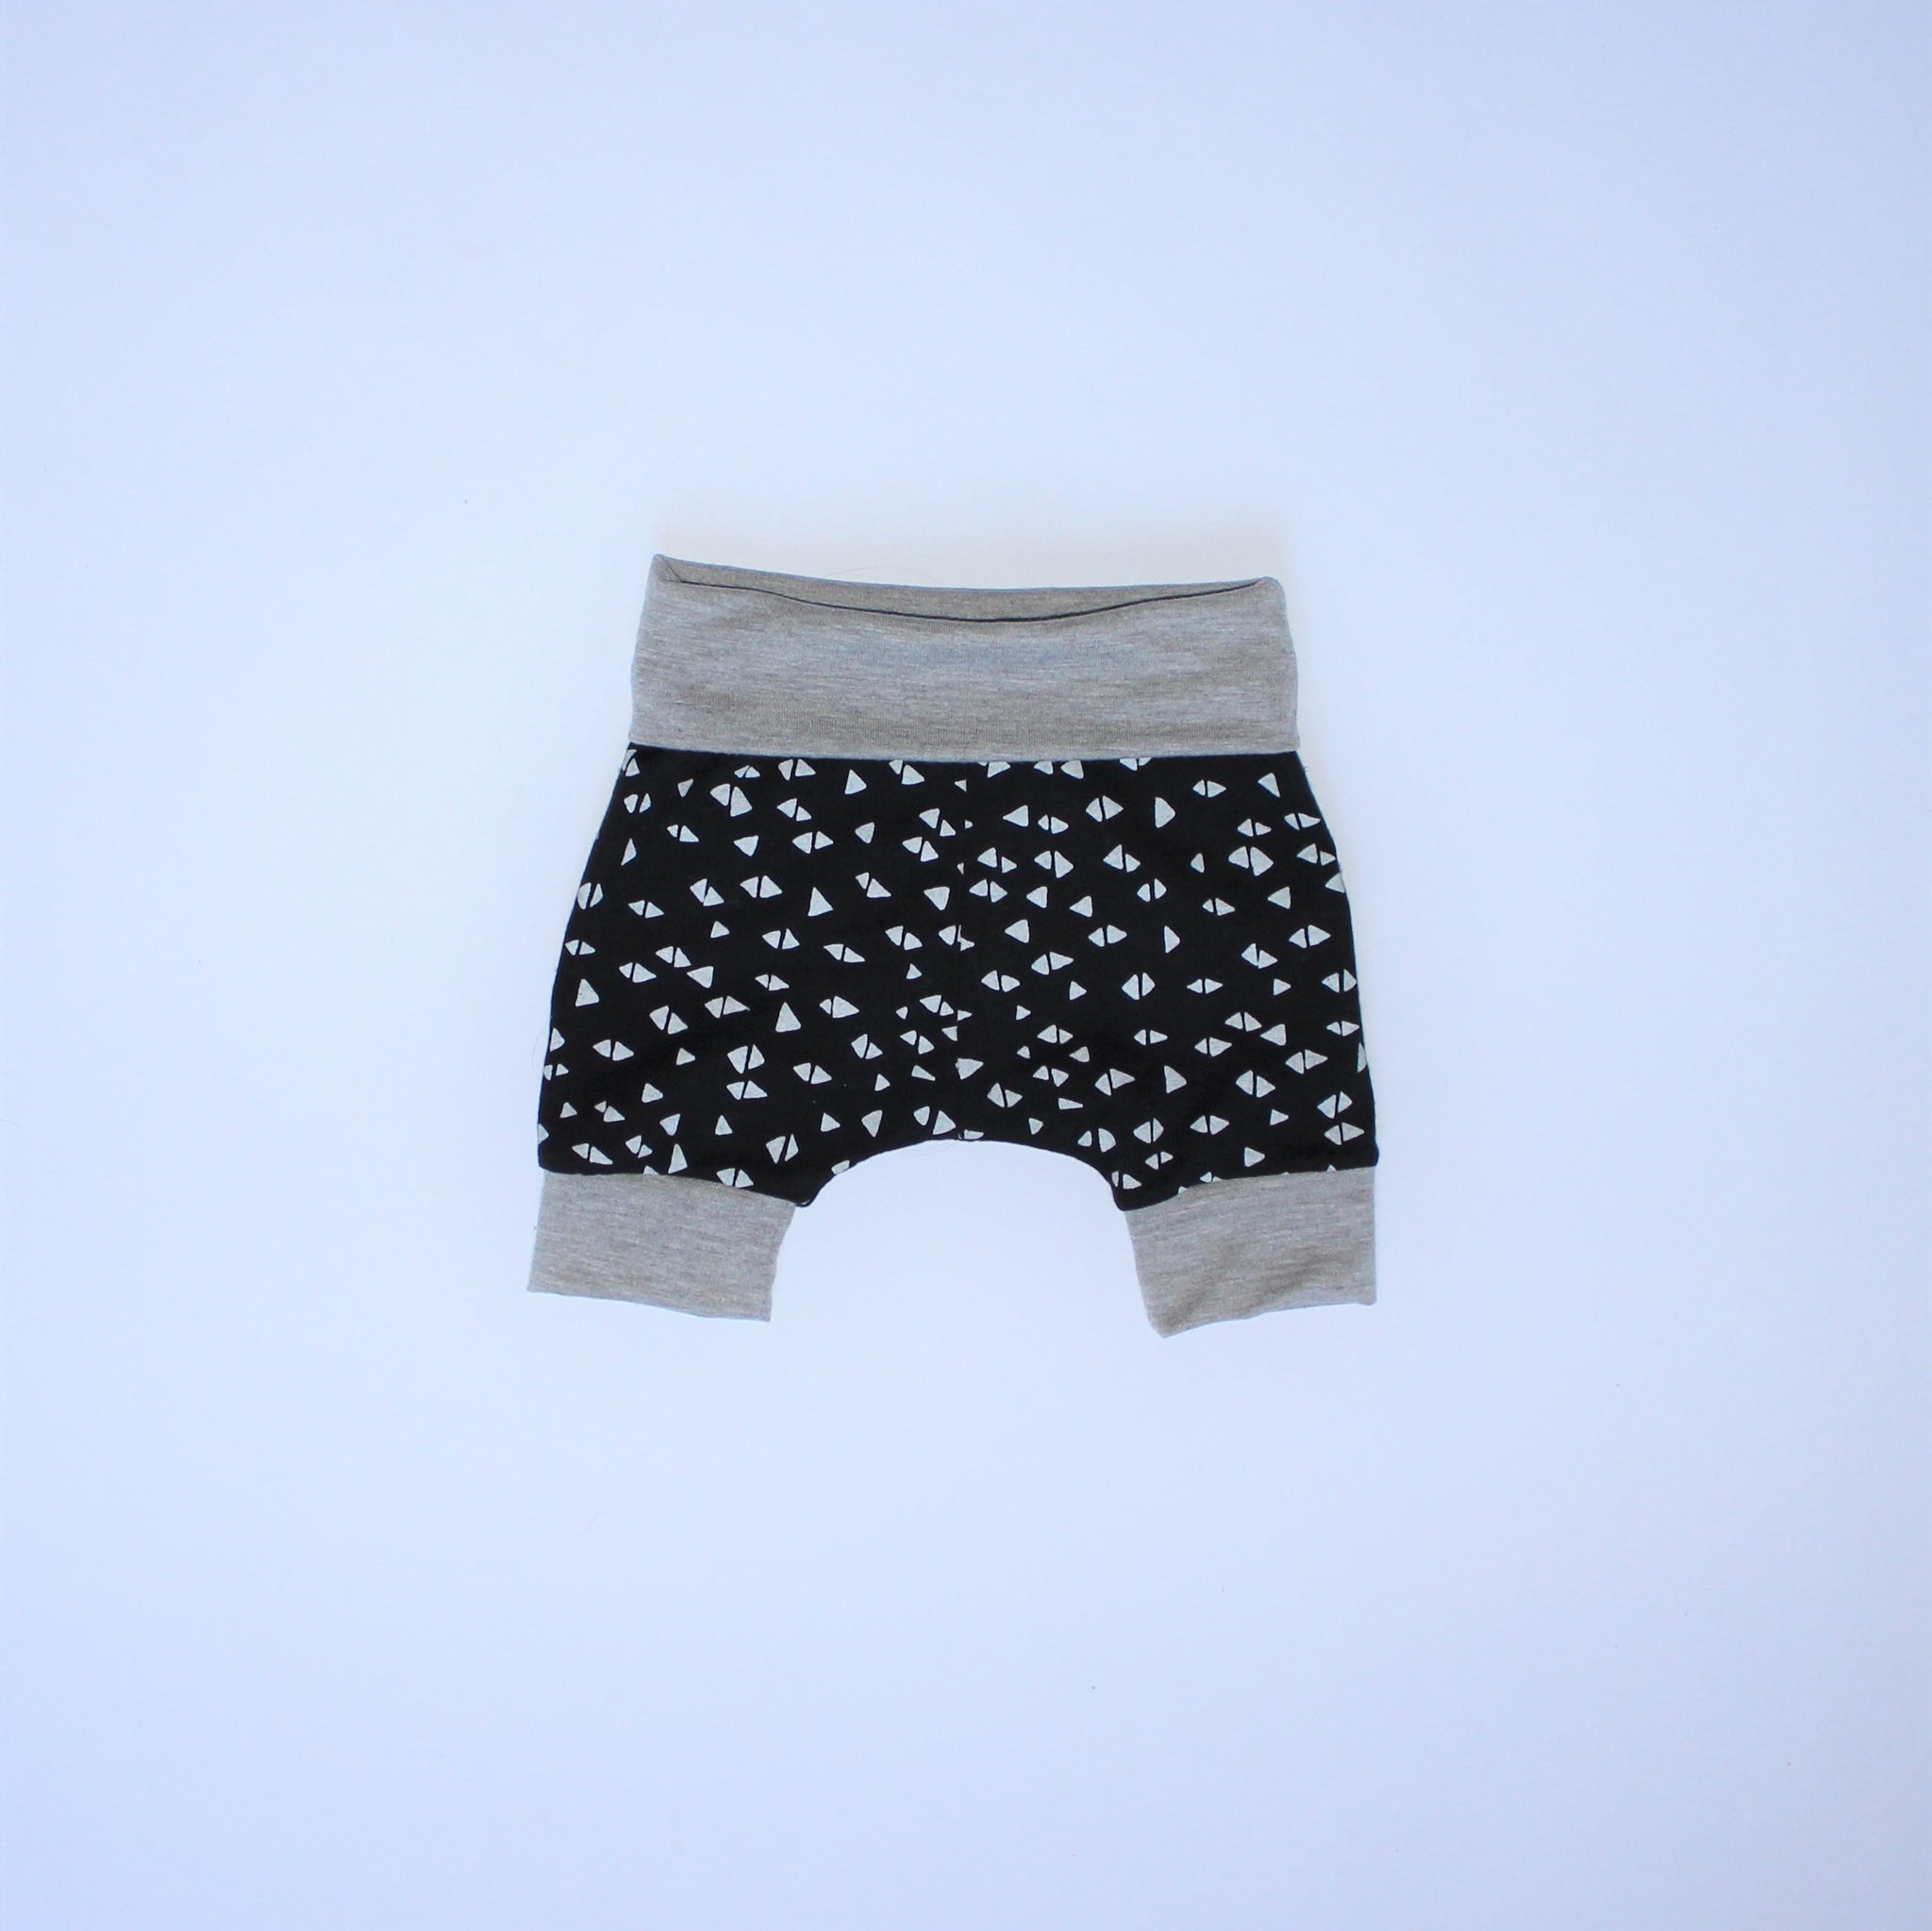 New Born Shorts - Triangles, Grey and Black